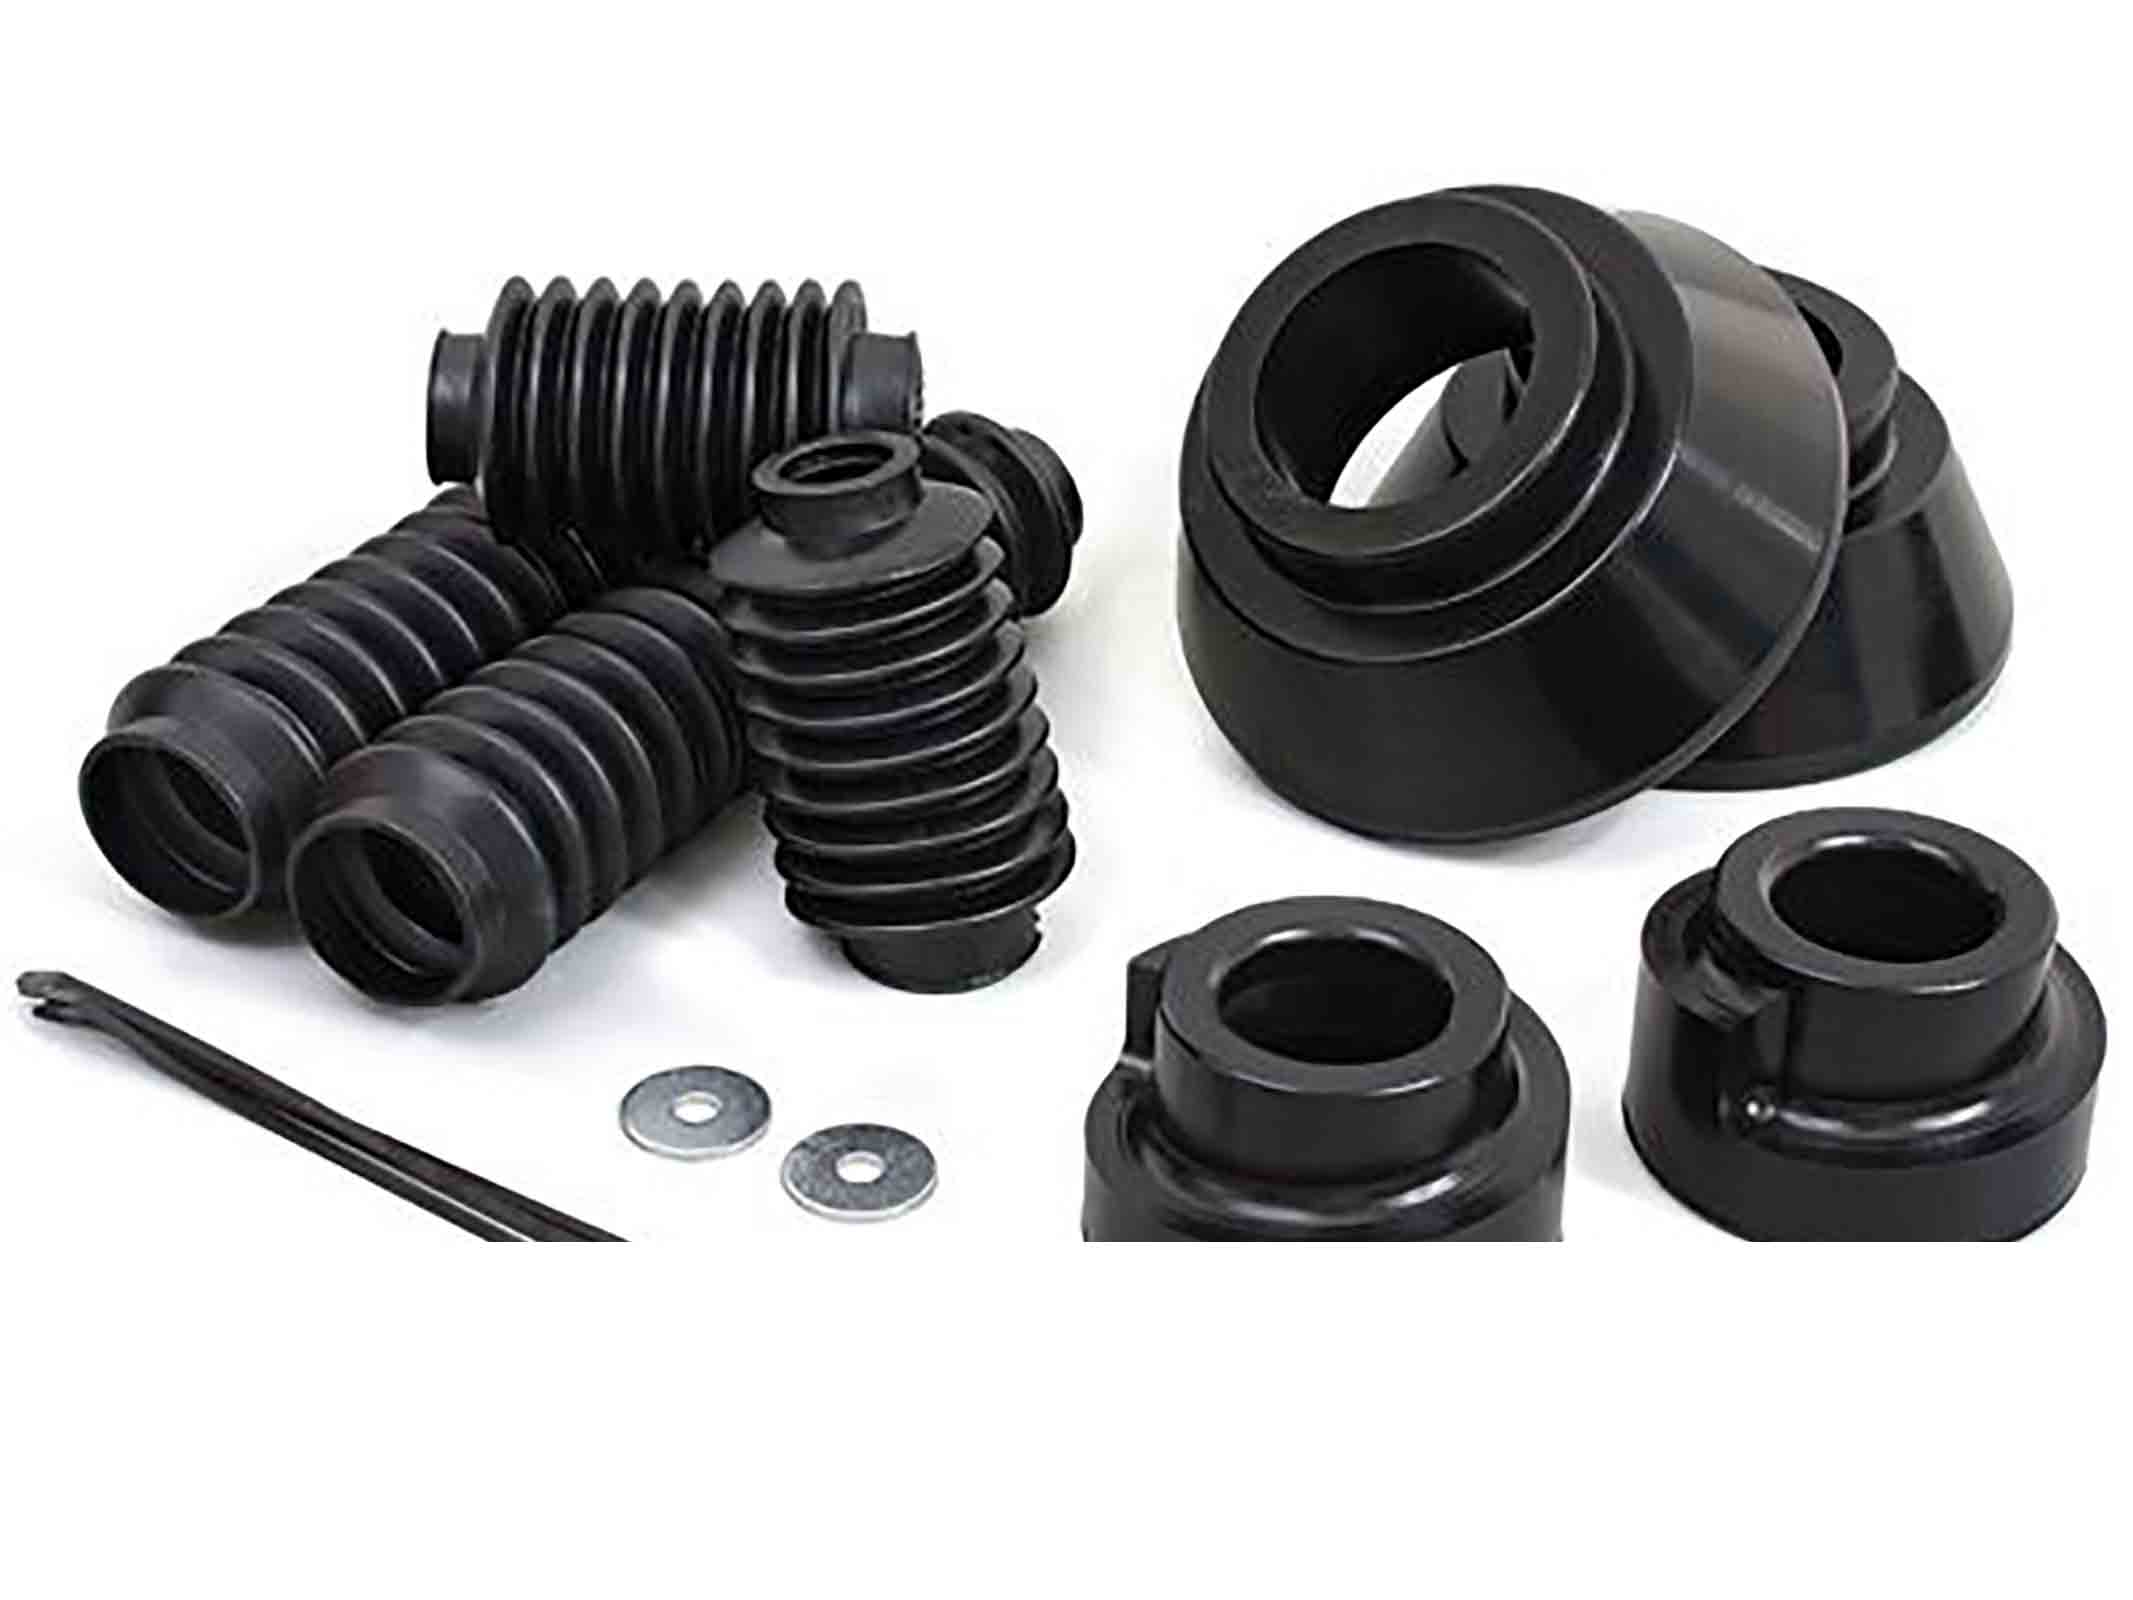 Kit rialzo cherokee kj 02 07  + 38mm anteriore + 50mm posteriore poly ricambi jeep